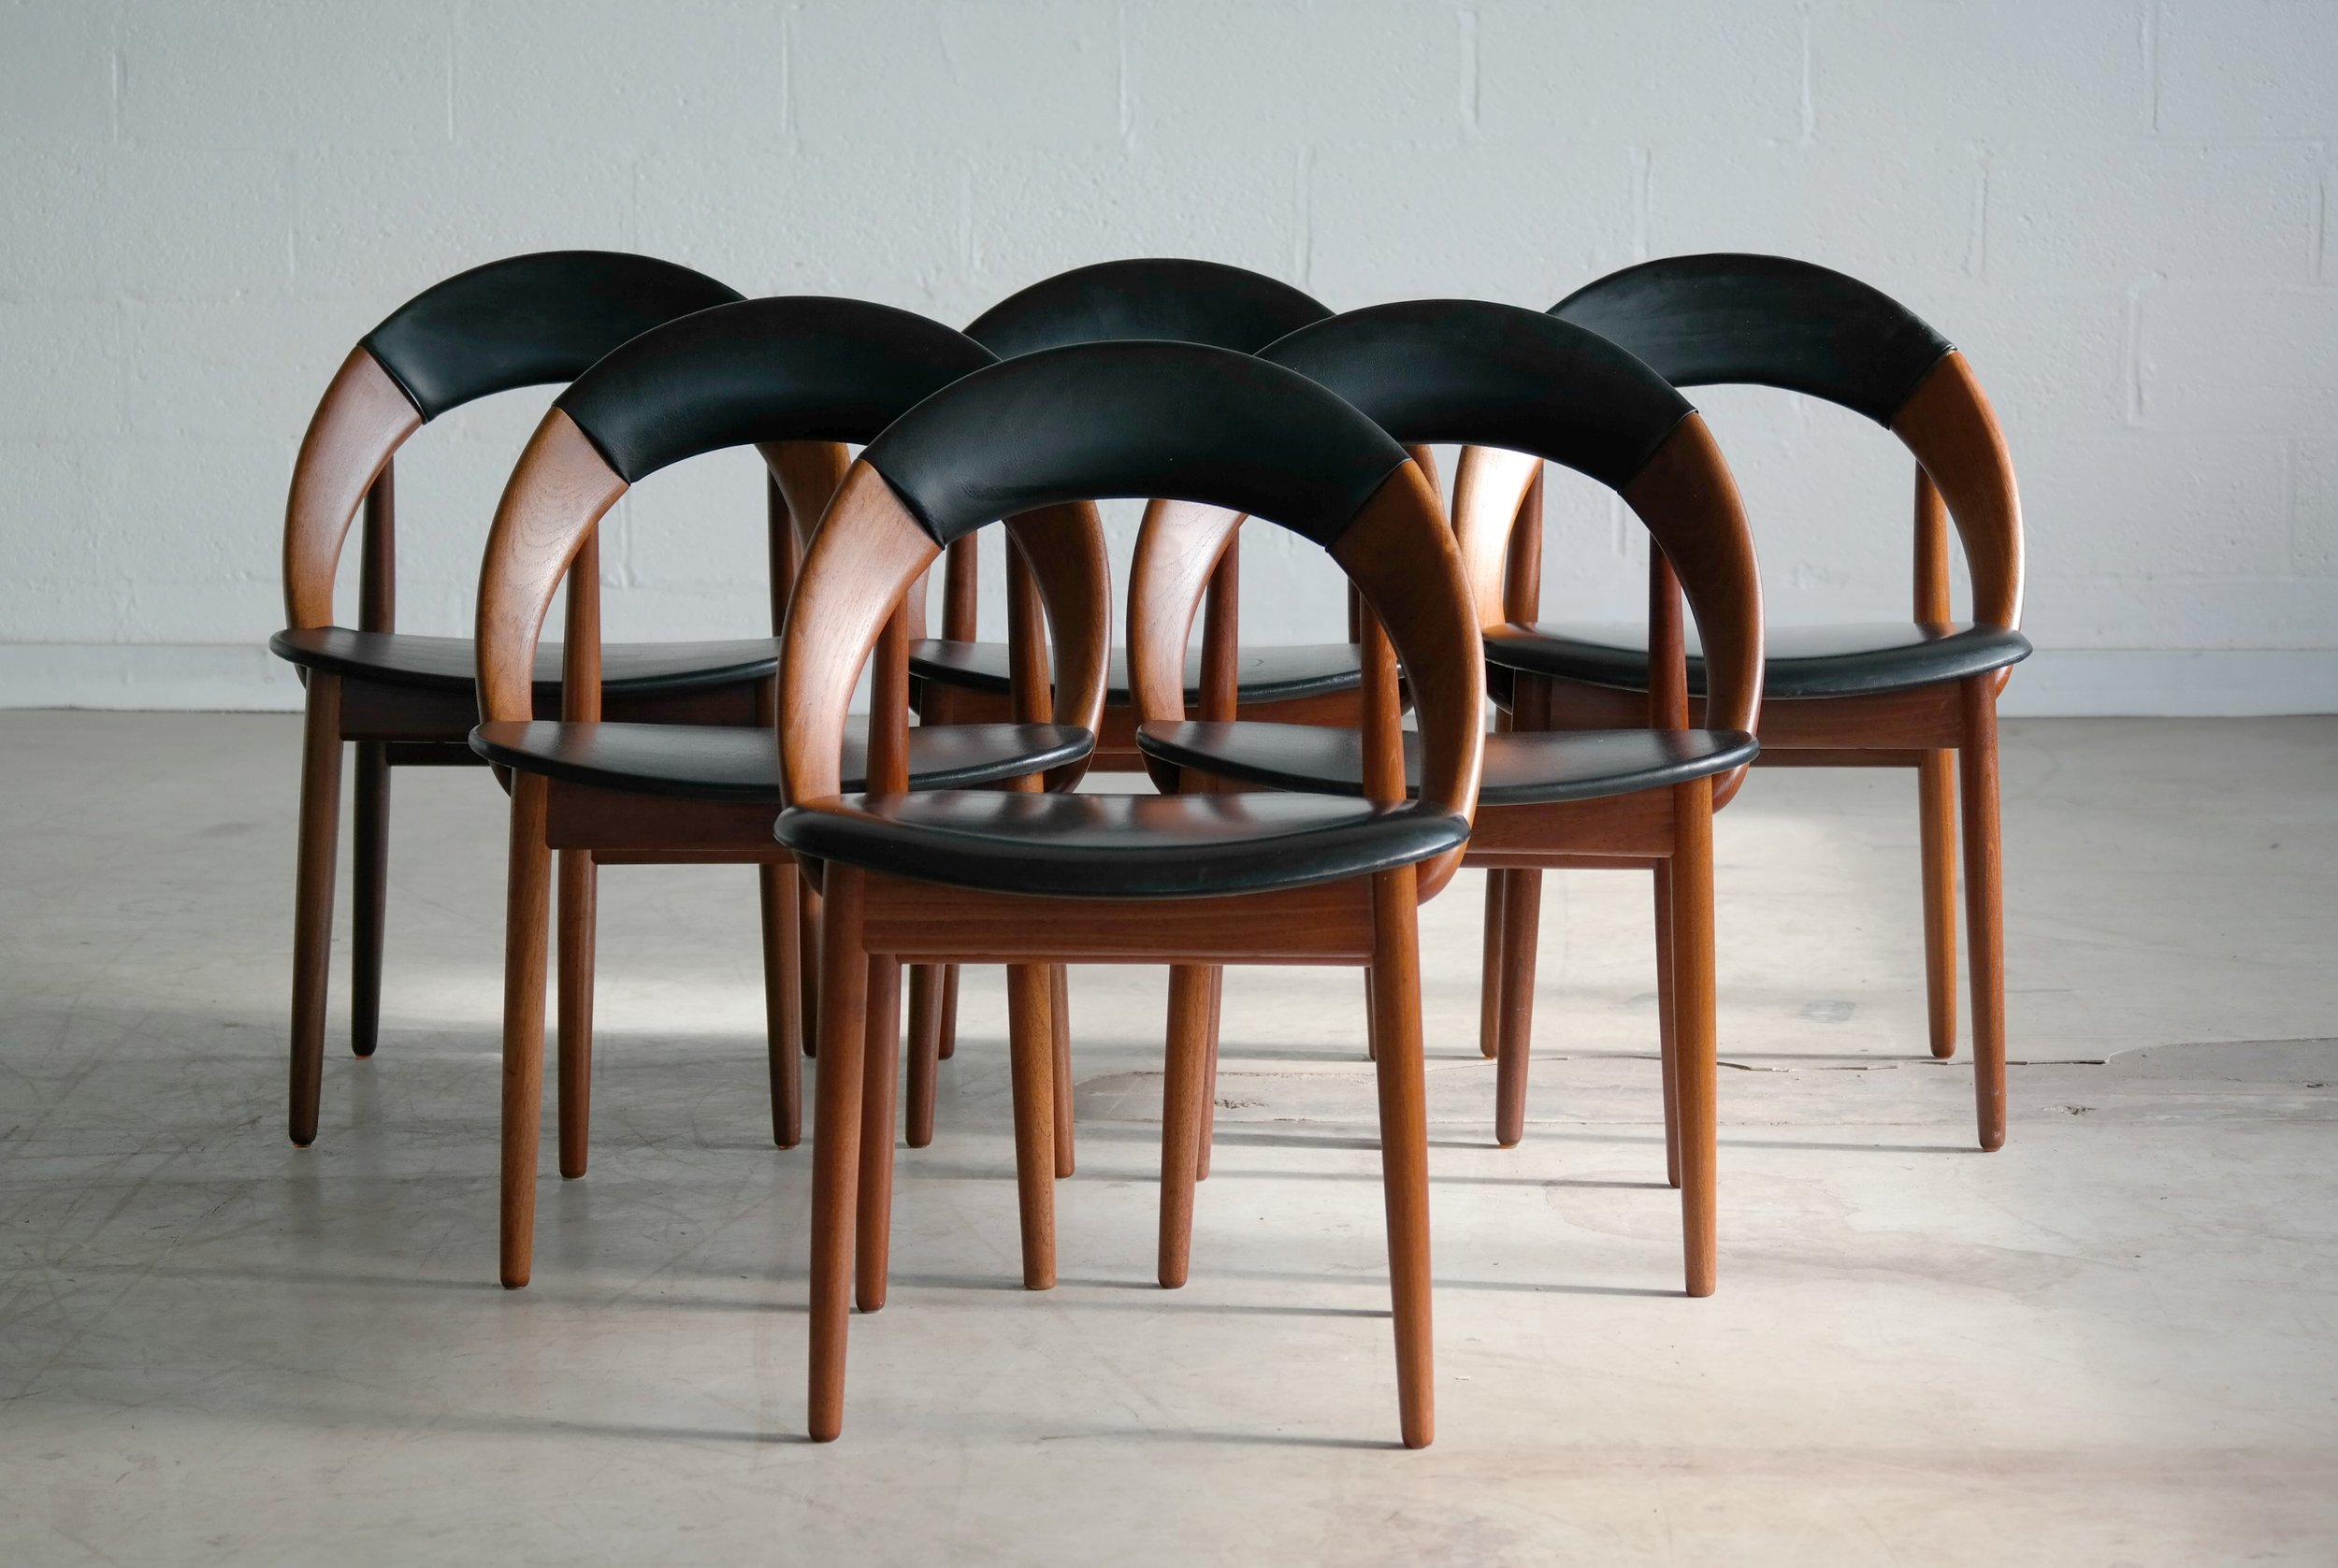 Very Rare Set of Six Dining Chairs by Arne Hovmand Olsen